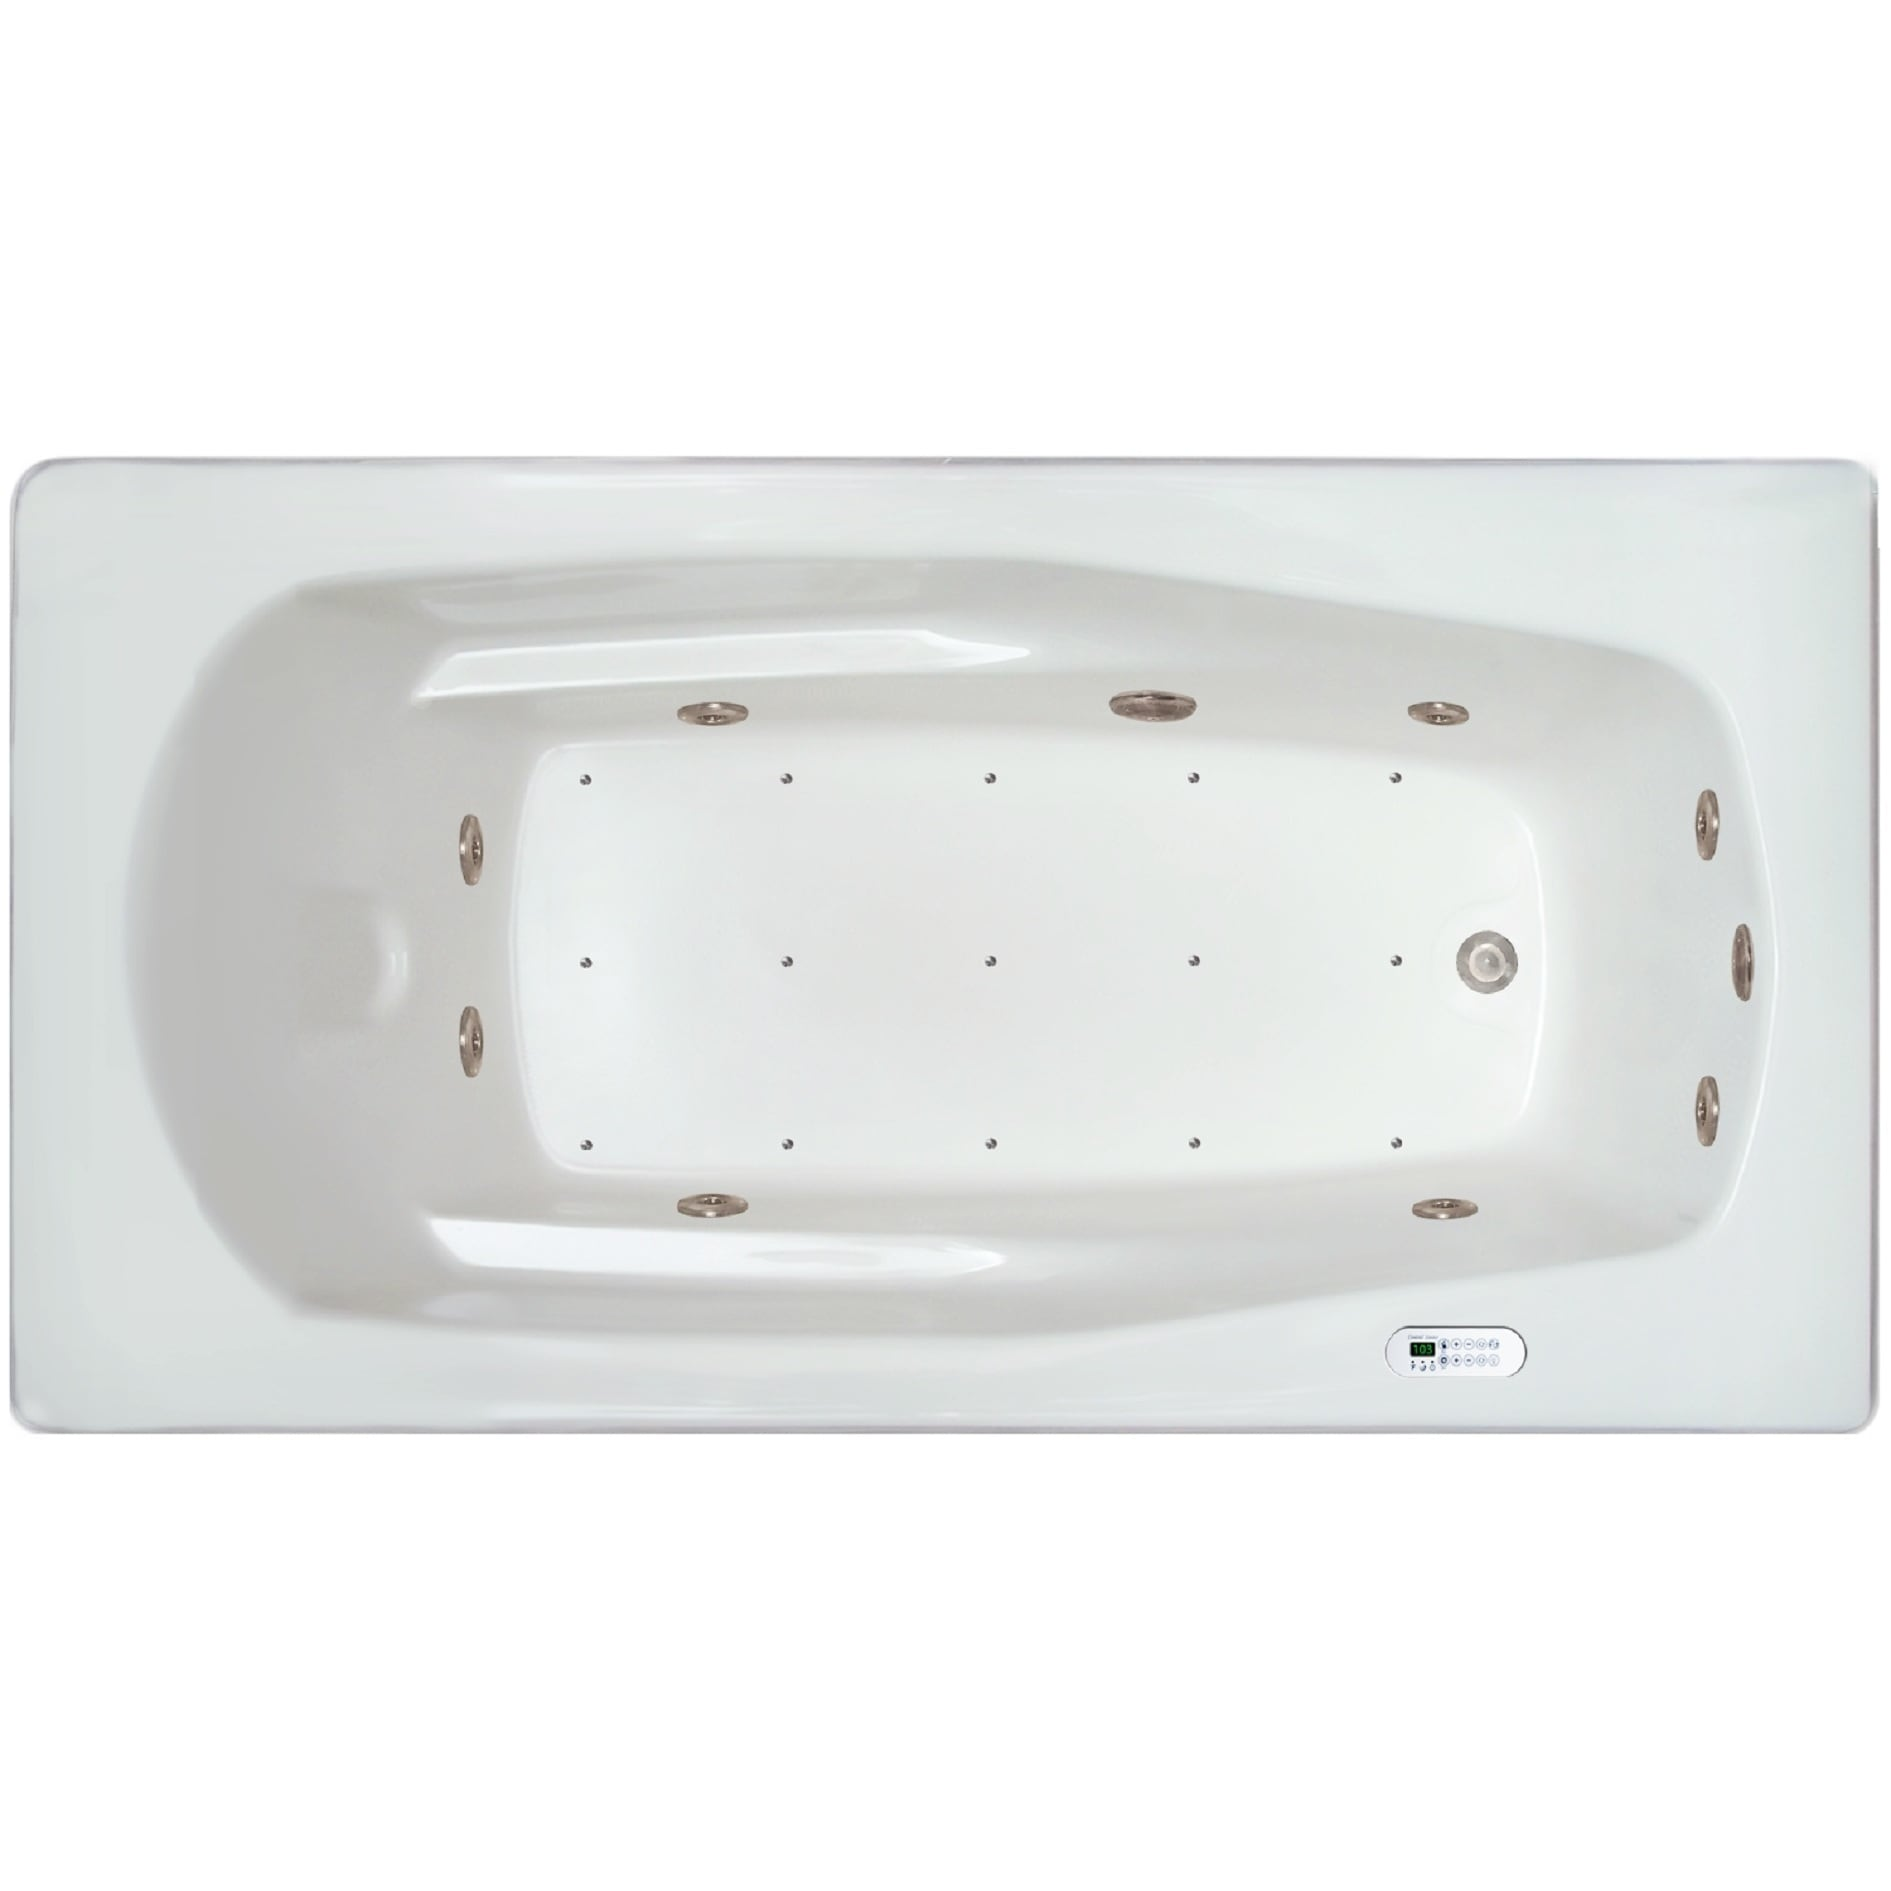 Shop Signature Bath White Acrylic Drop-in Whirlpool Combo Tub - Free ...